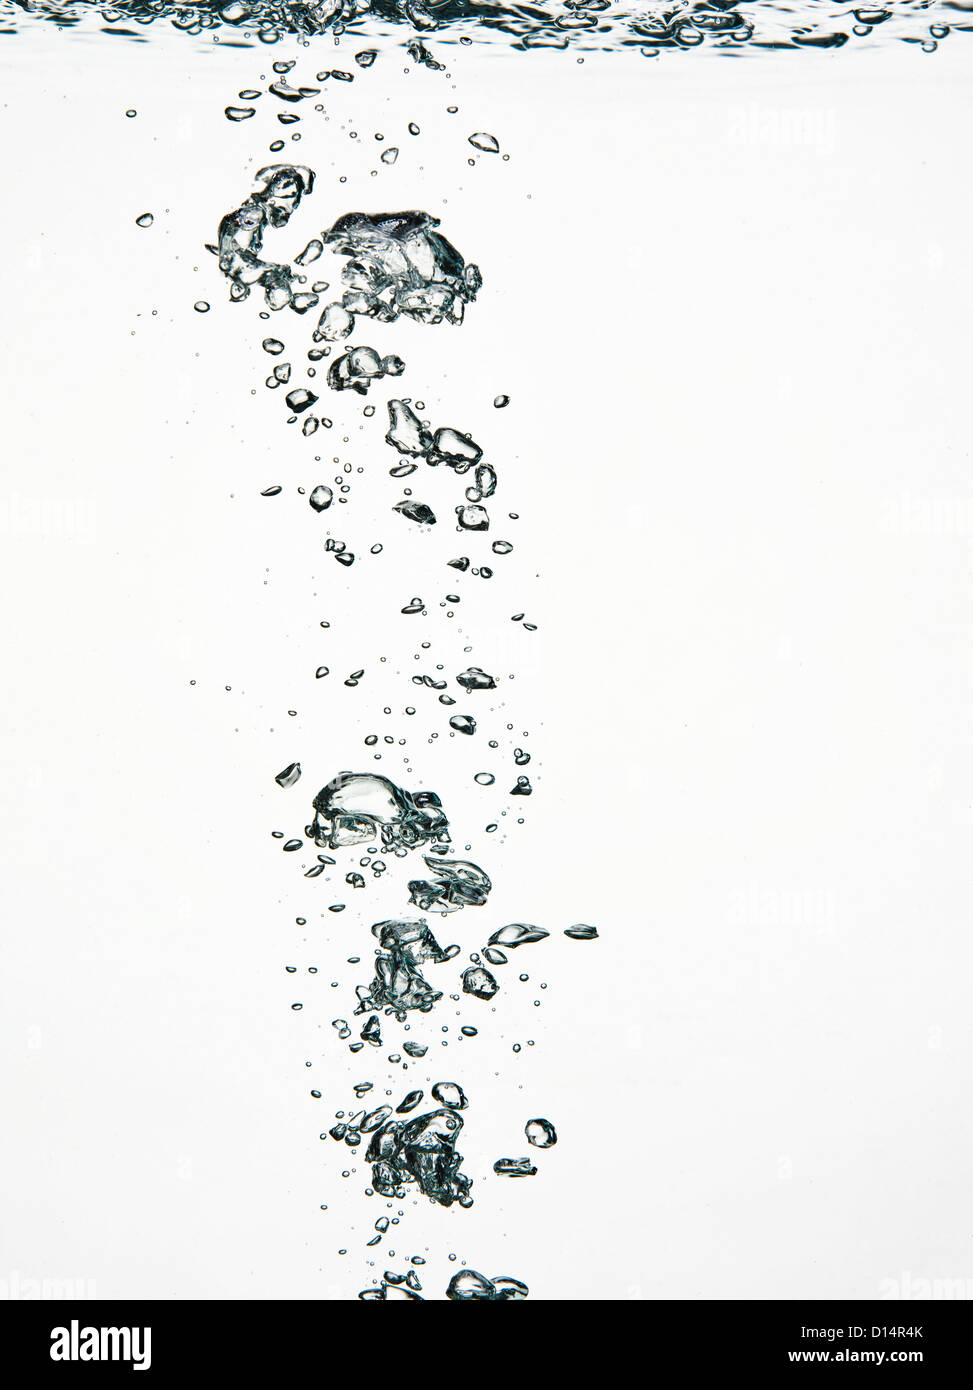 Close up of bubbles in water - Stock Image